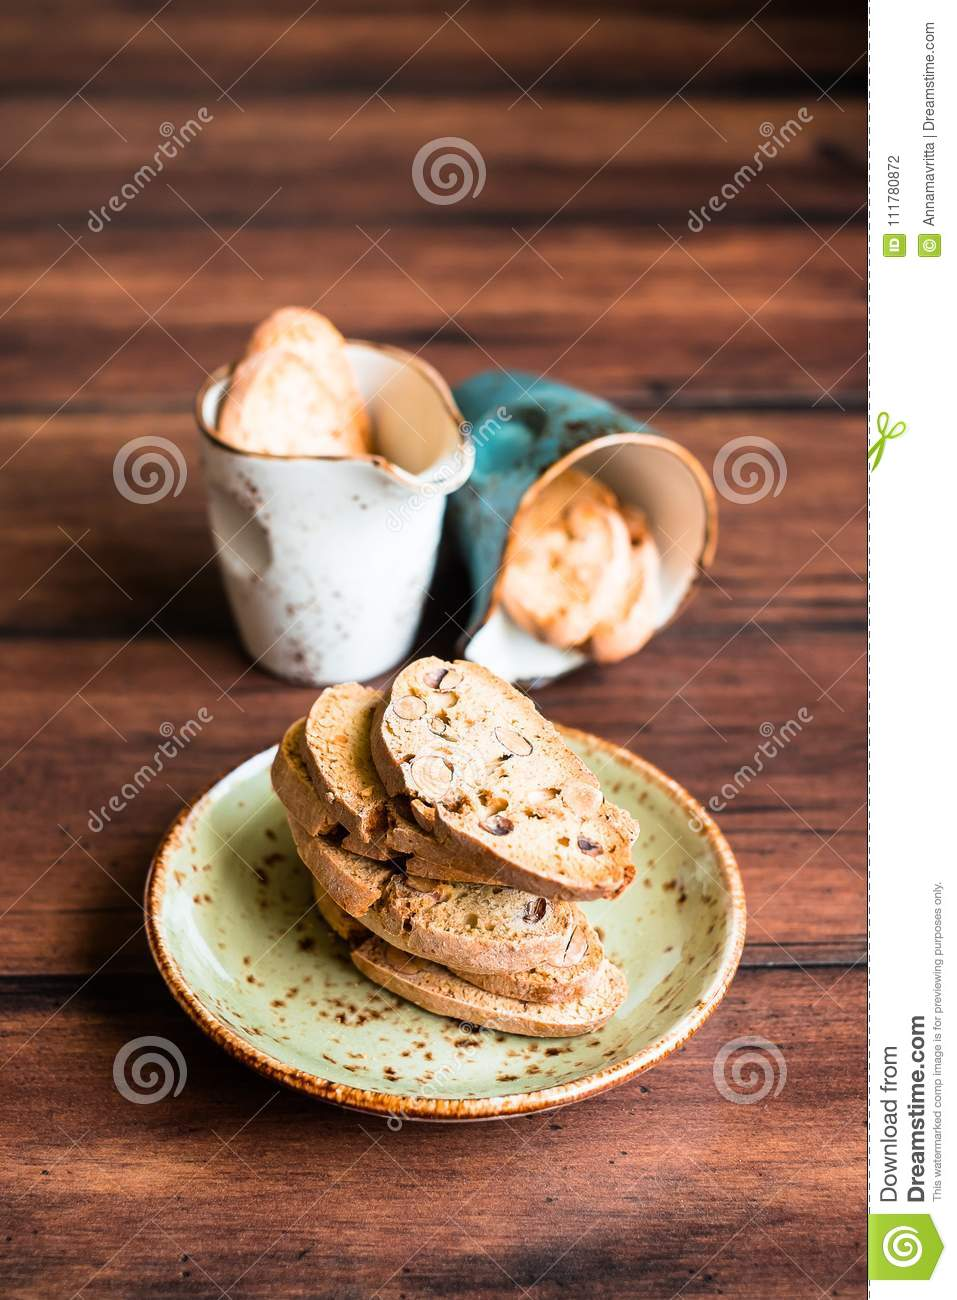 Italian dry cookies cantucci or biscotti with almond nuts stacked on a dessert plate on a wooden table, selective focus.